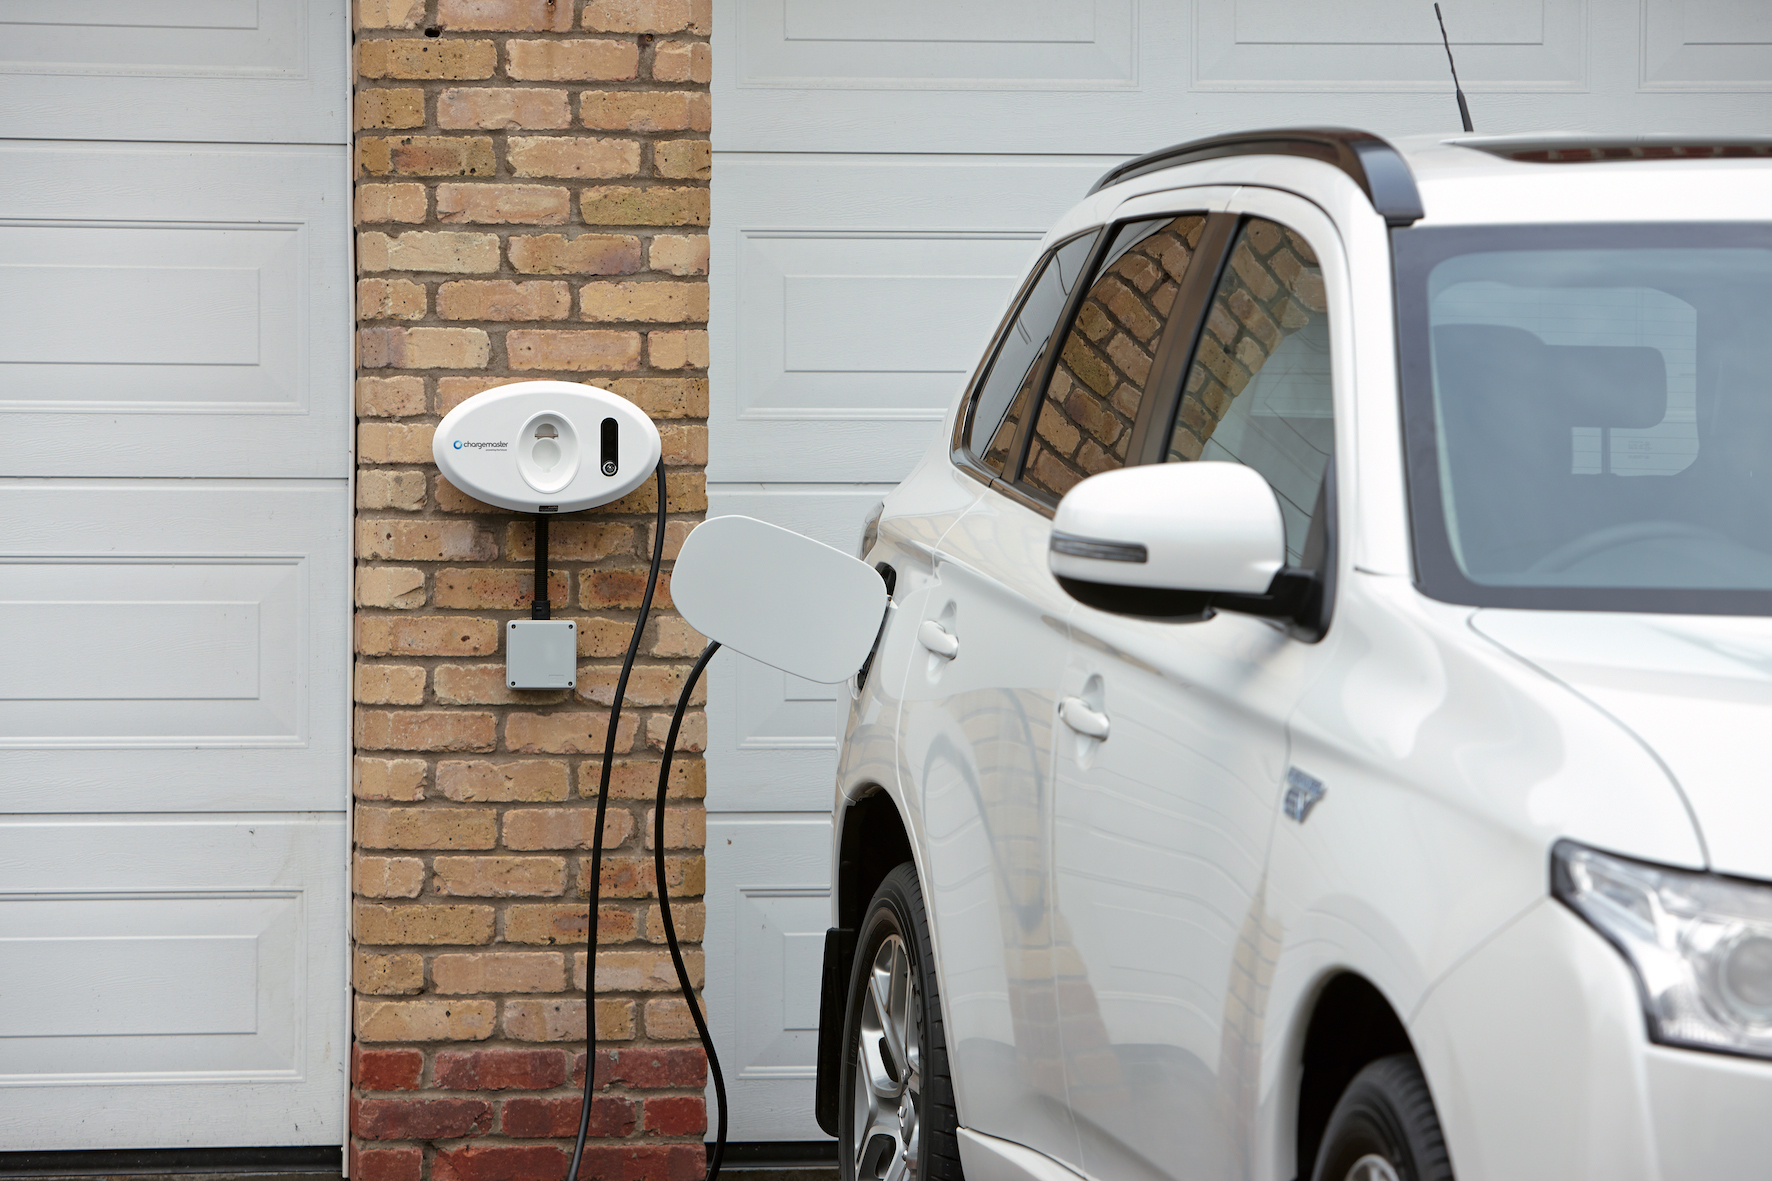 Chargemaster tethered white homecharge unit on garage charging Mitsubishi SUV